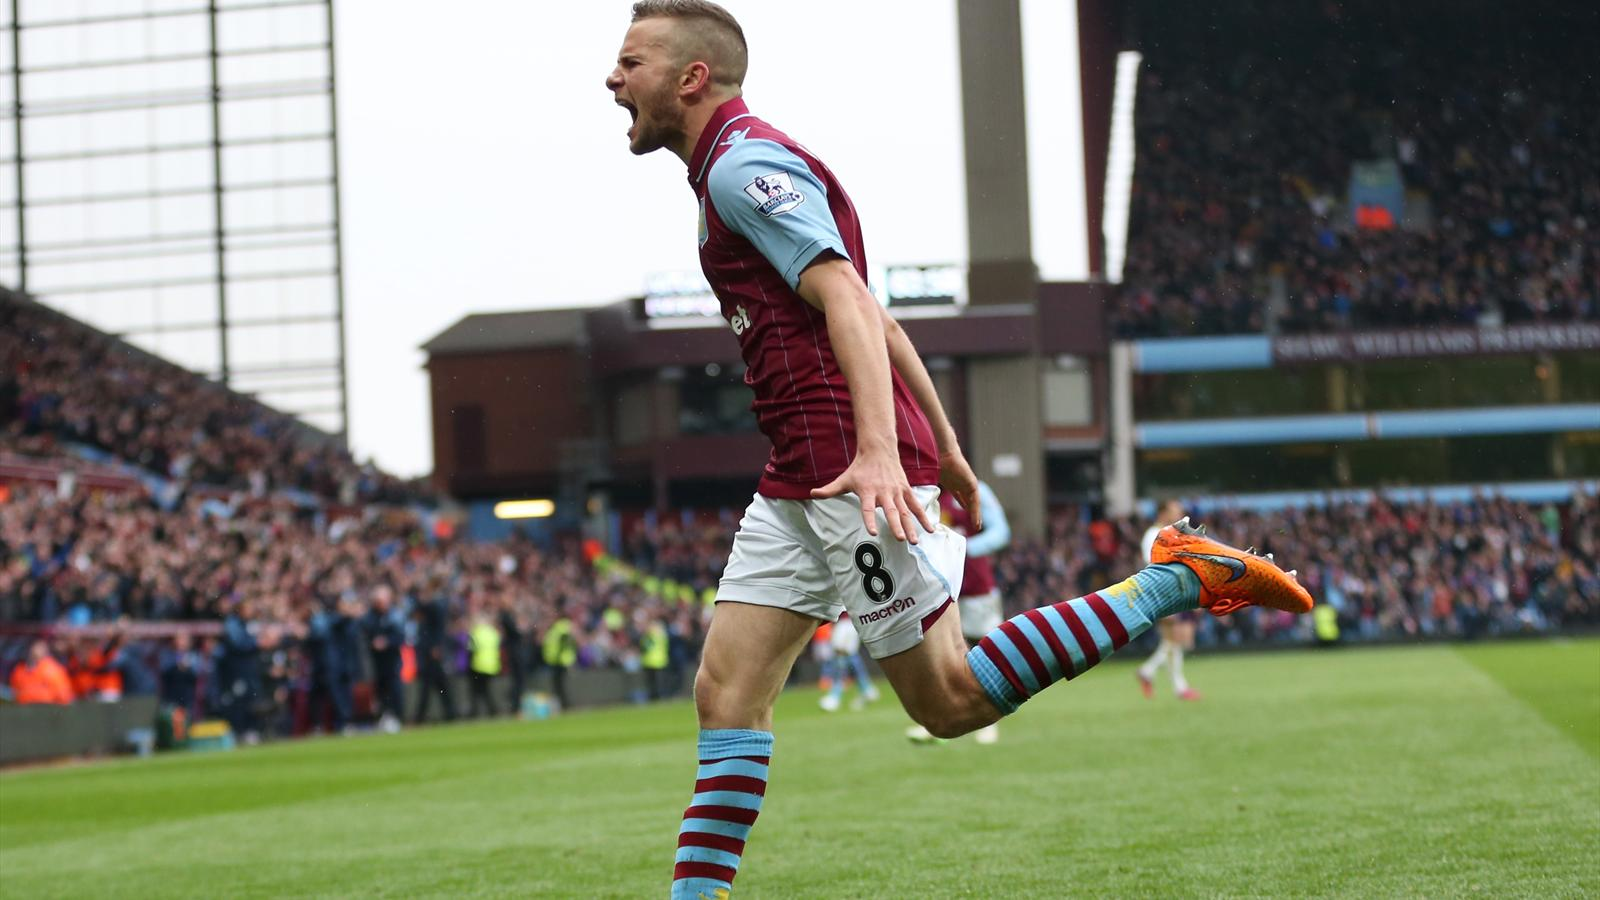 Tom Cleverley roars his celebration